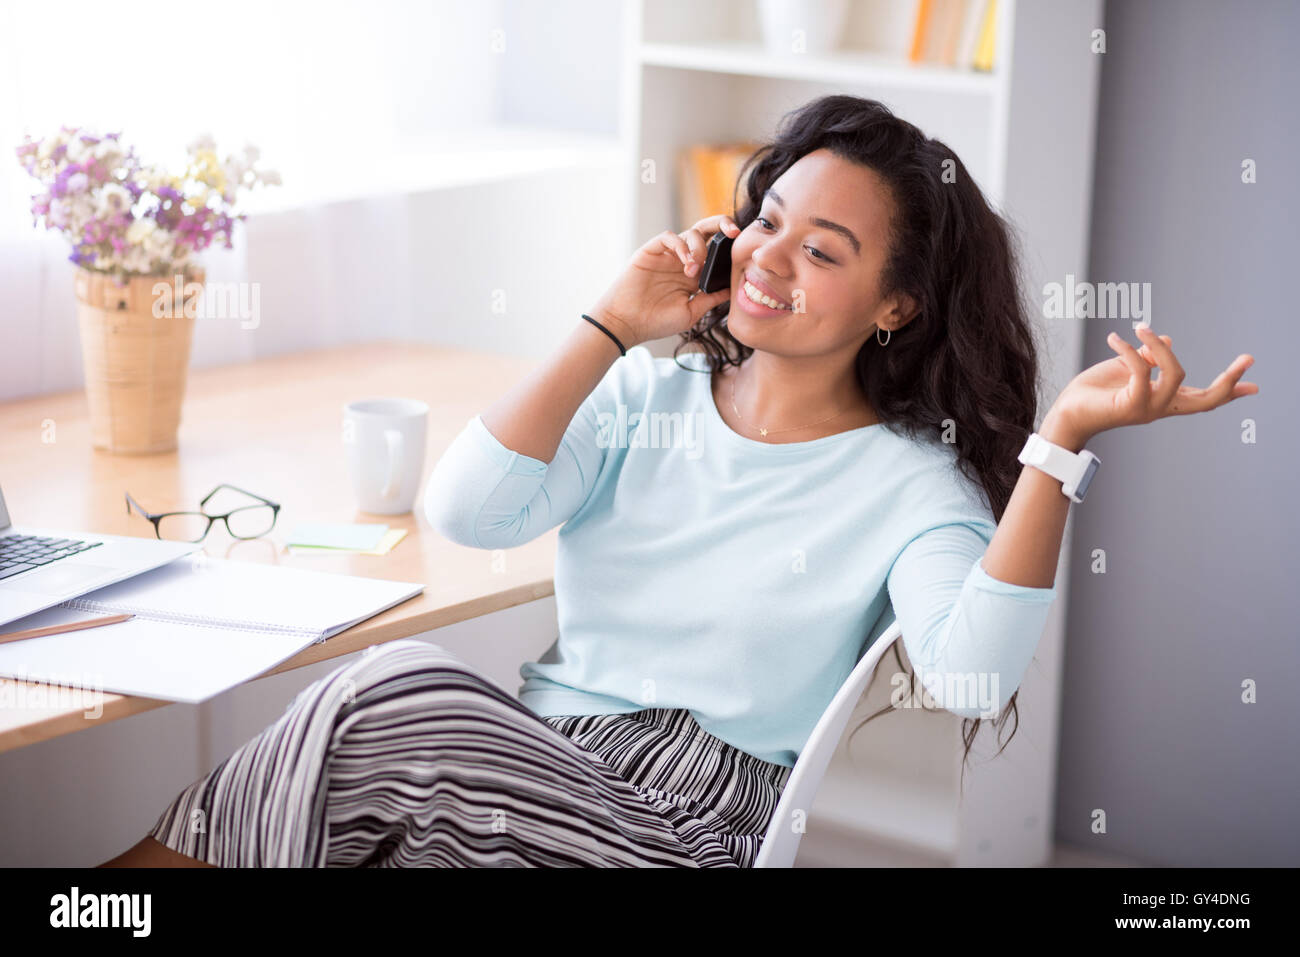 Positive woman talking on cell phone - Stock Image